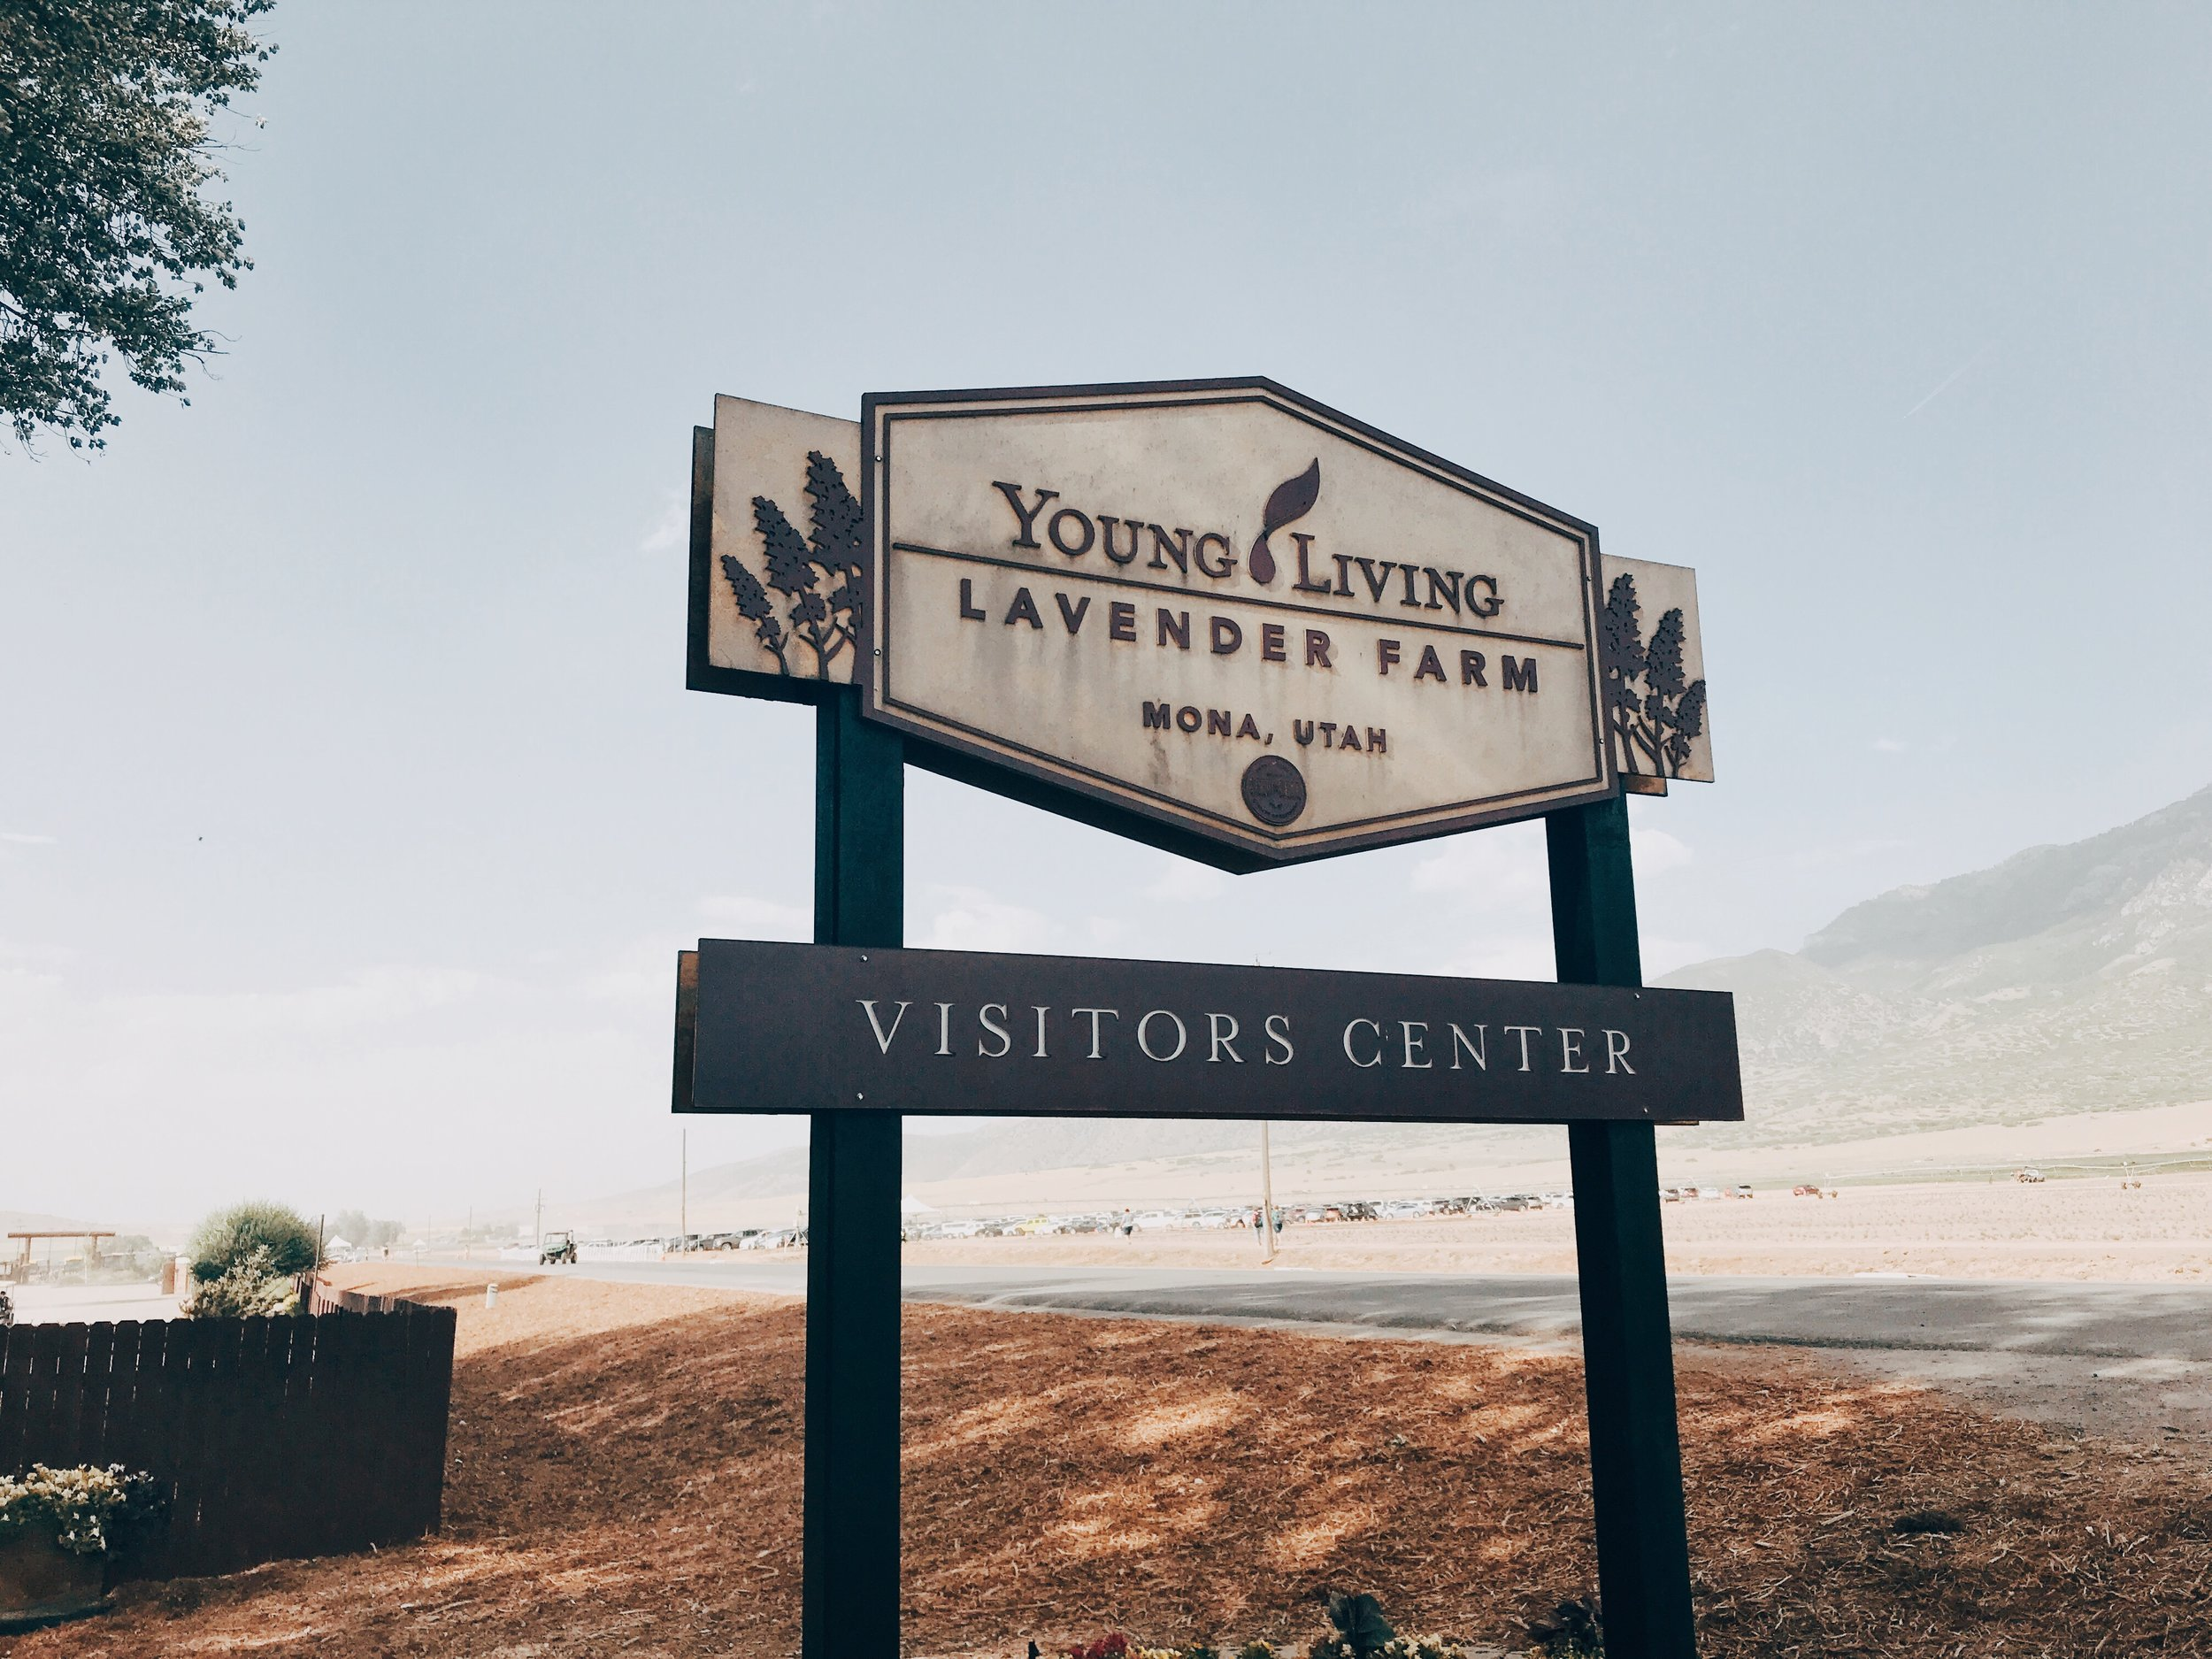 Anyone can visit any of Young Living's farms without an appointment…just visit during business hours!